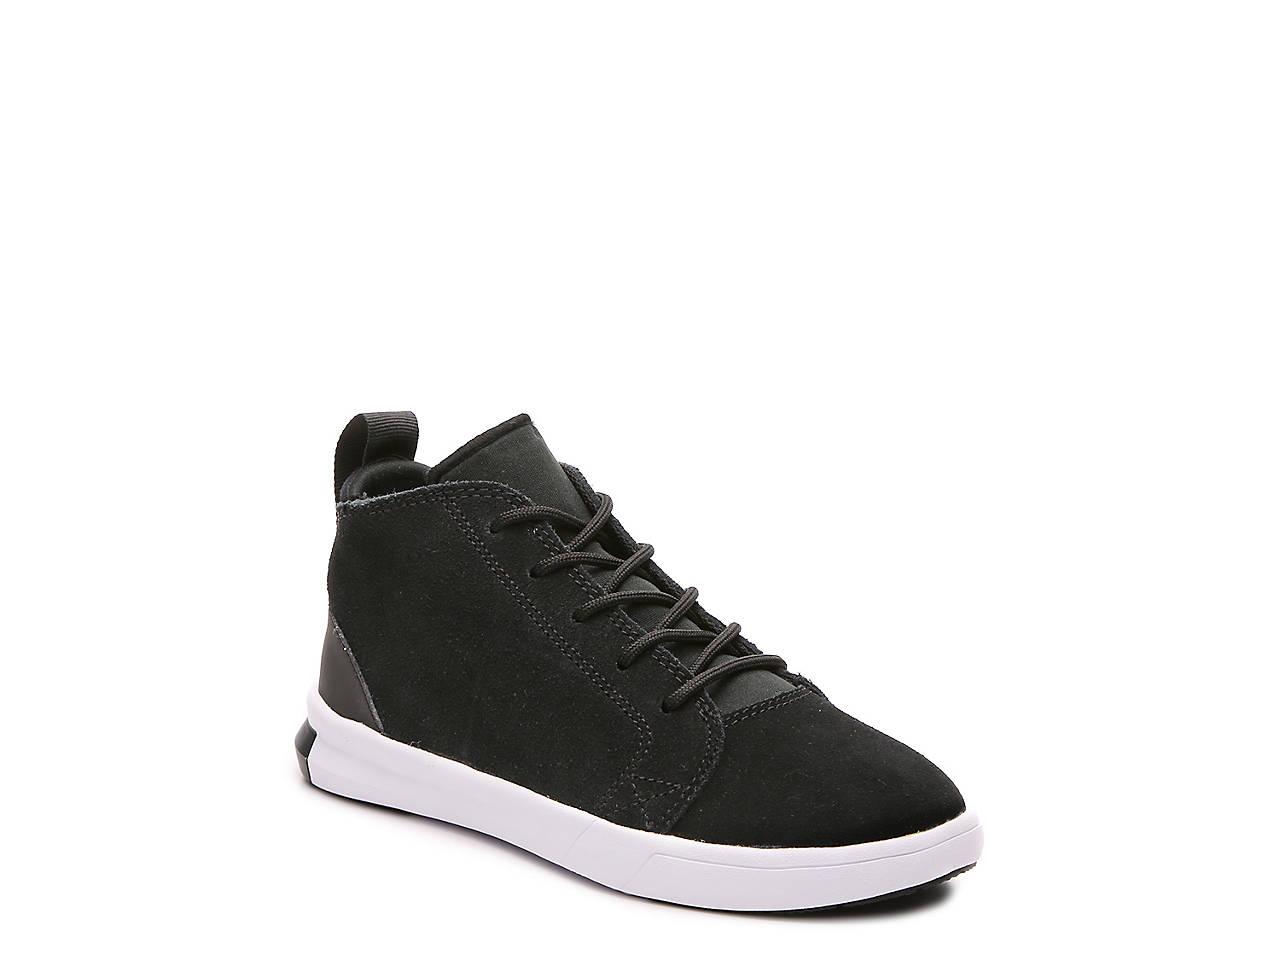 a2912c73a860 Converse Chuck Taylor All Star Easy Ride Toddler   Youth High-Top ...